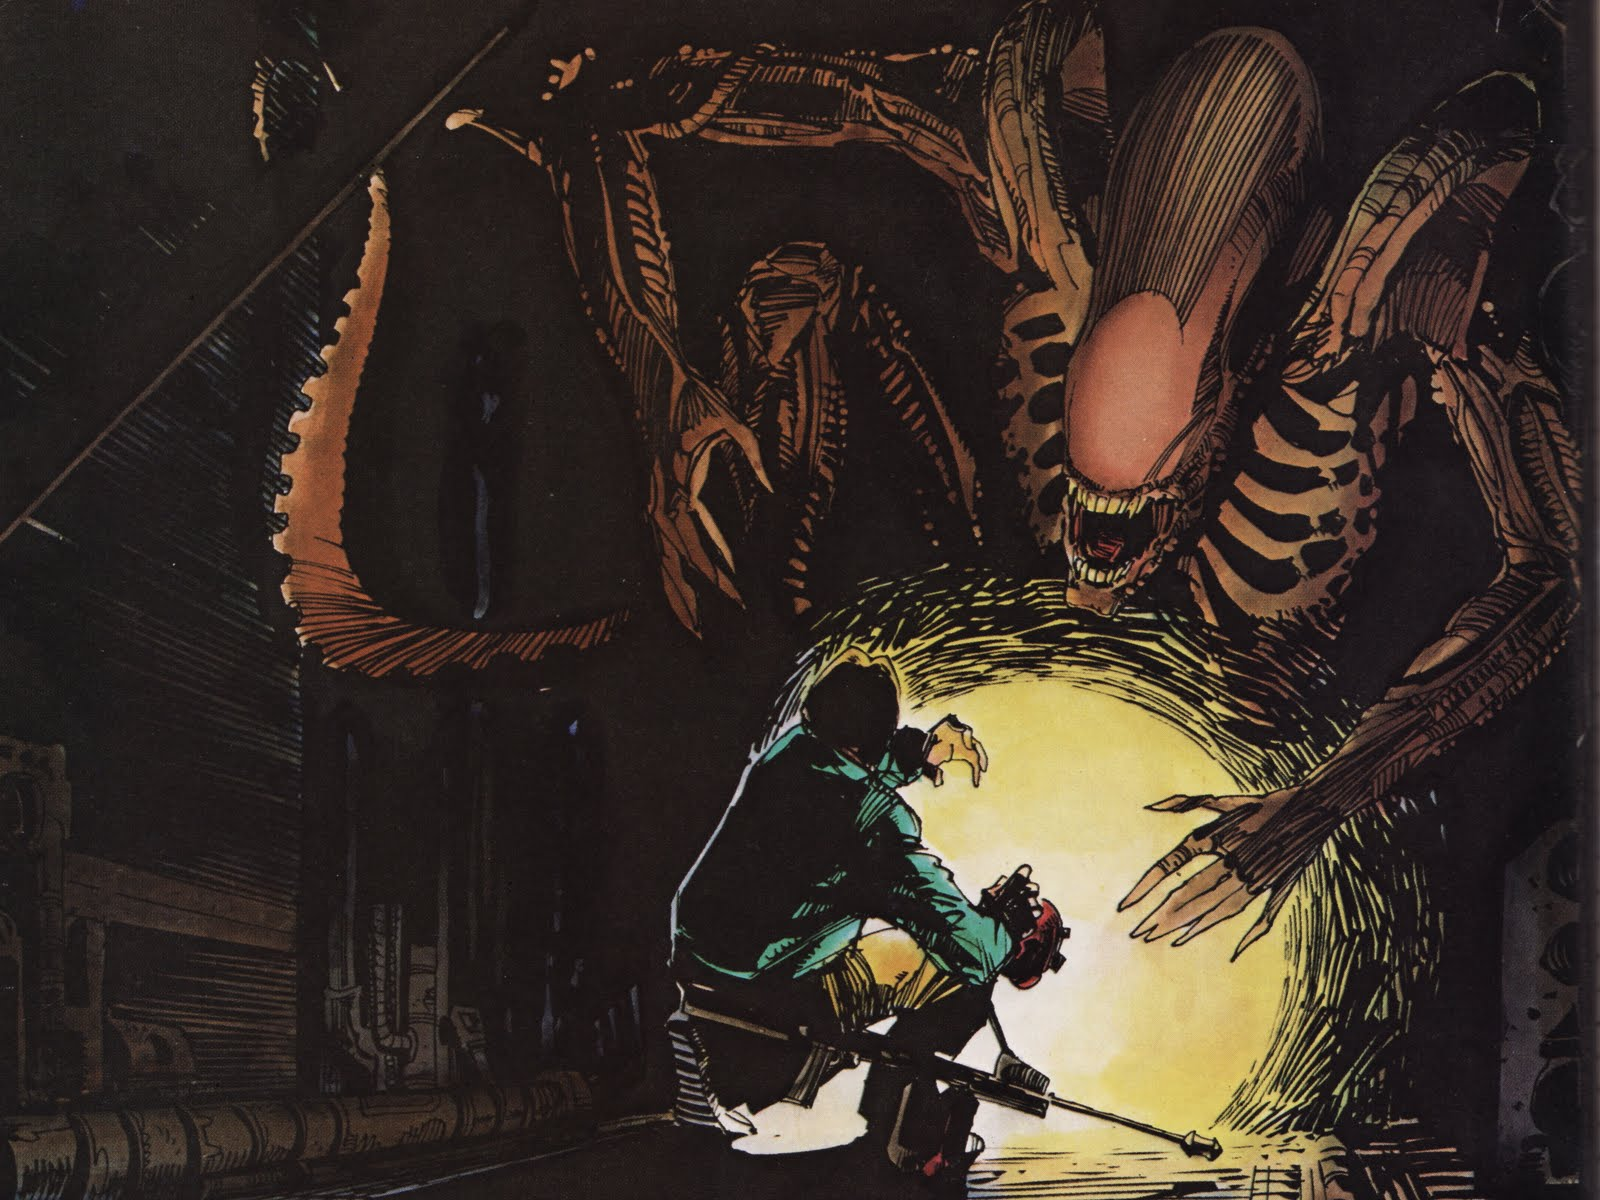 Page from Alien: The Illustrated Story. Art by Walter Simonson.